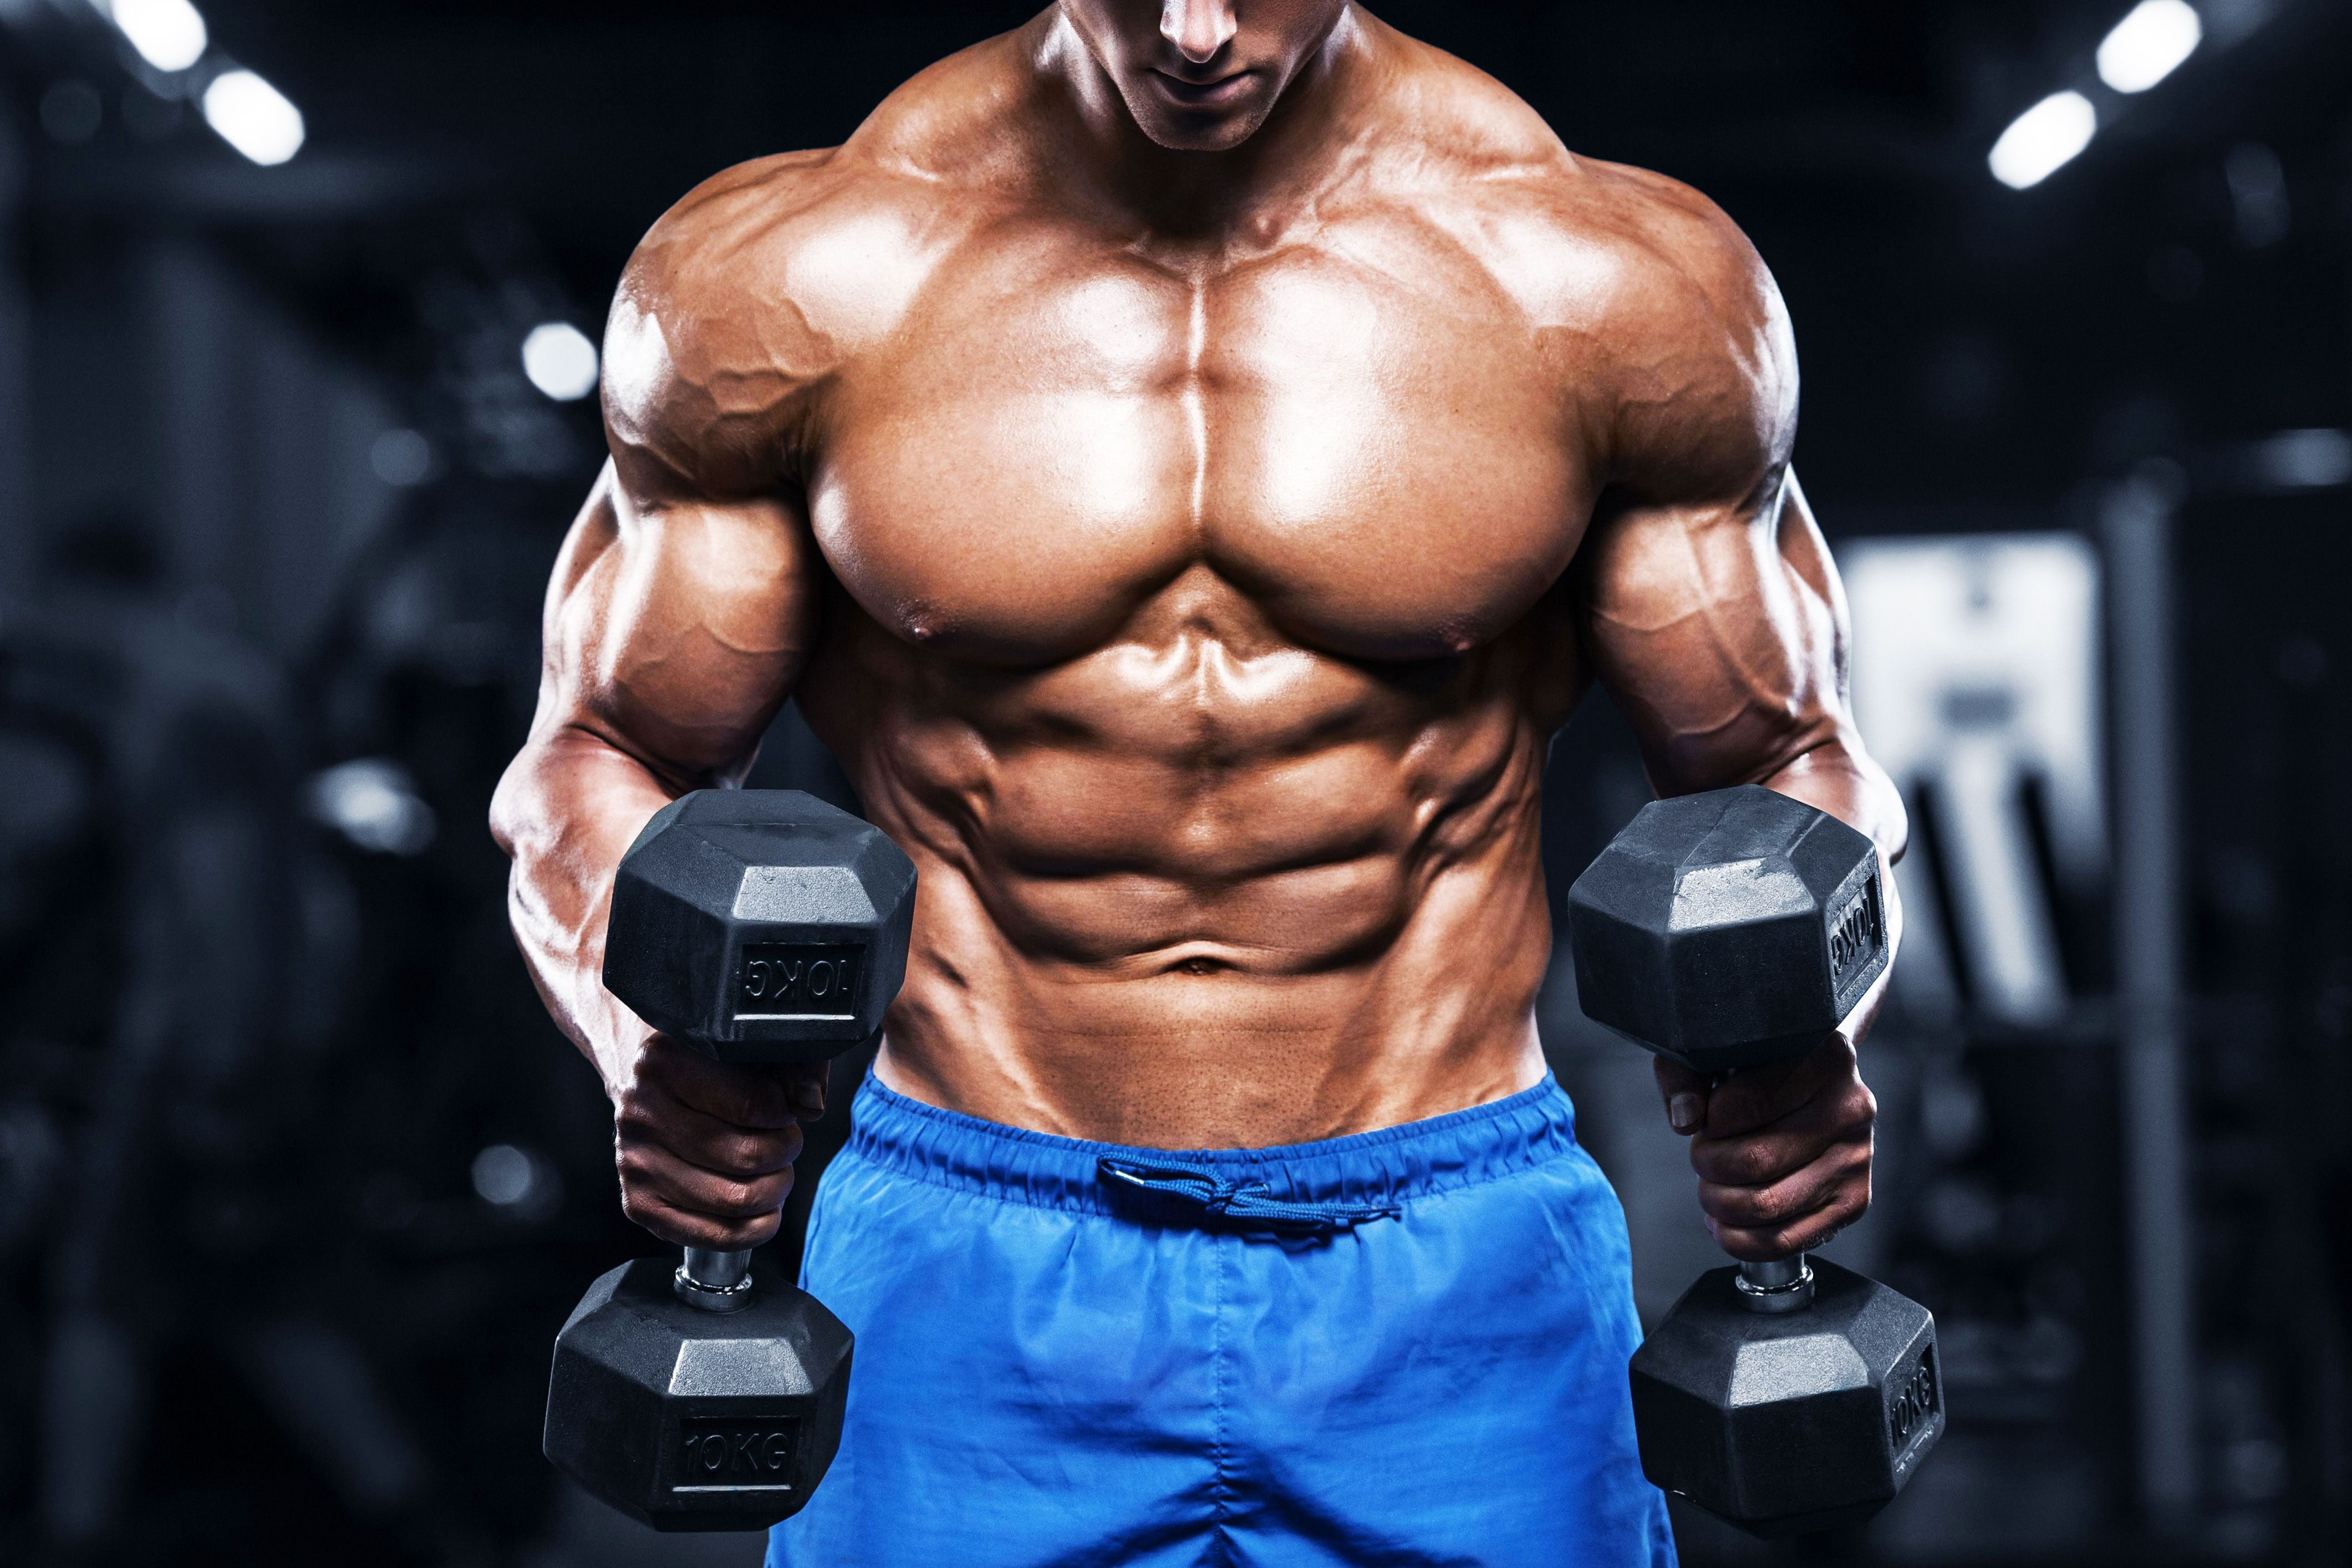 How To Gain Muscle Fast 10 Tips For Men For Protein